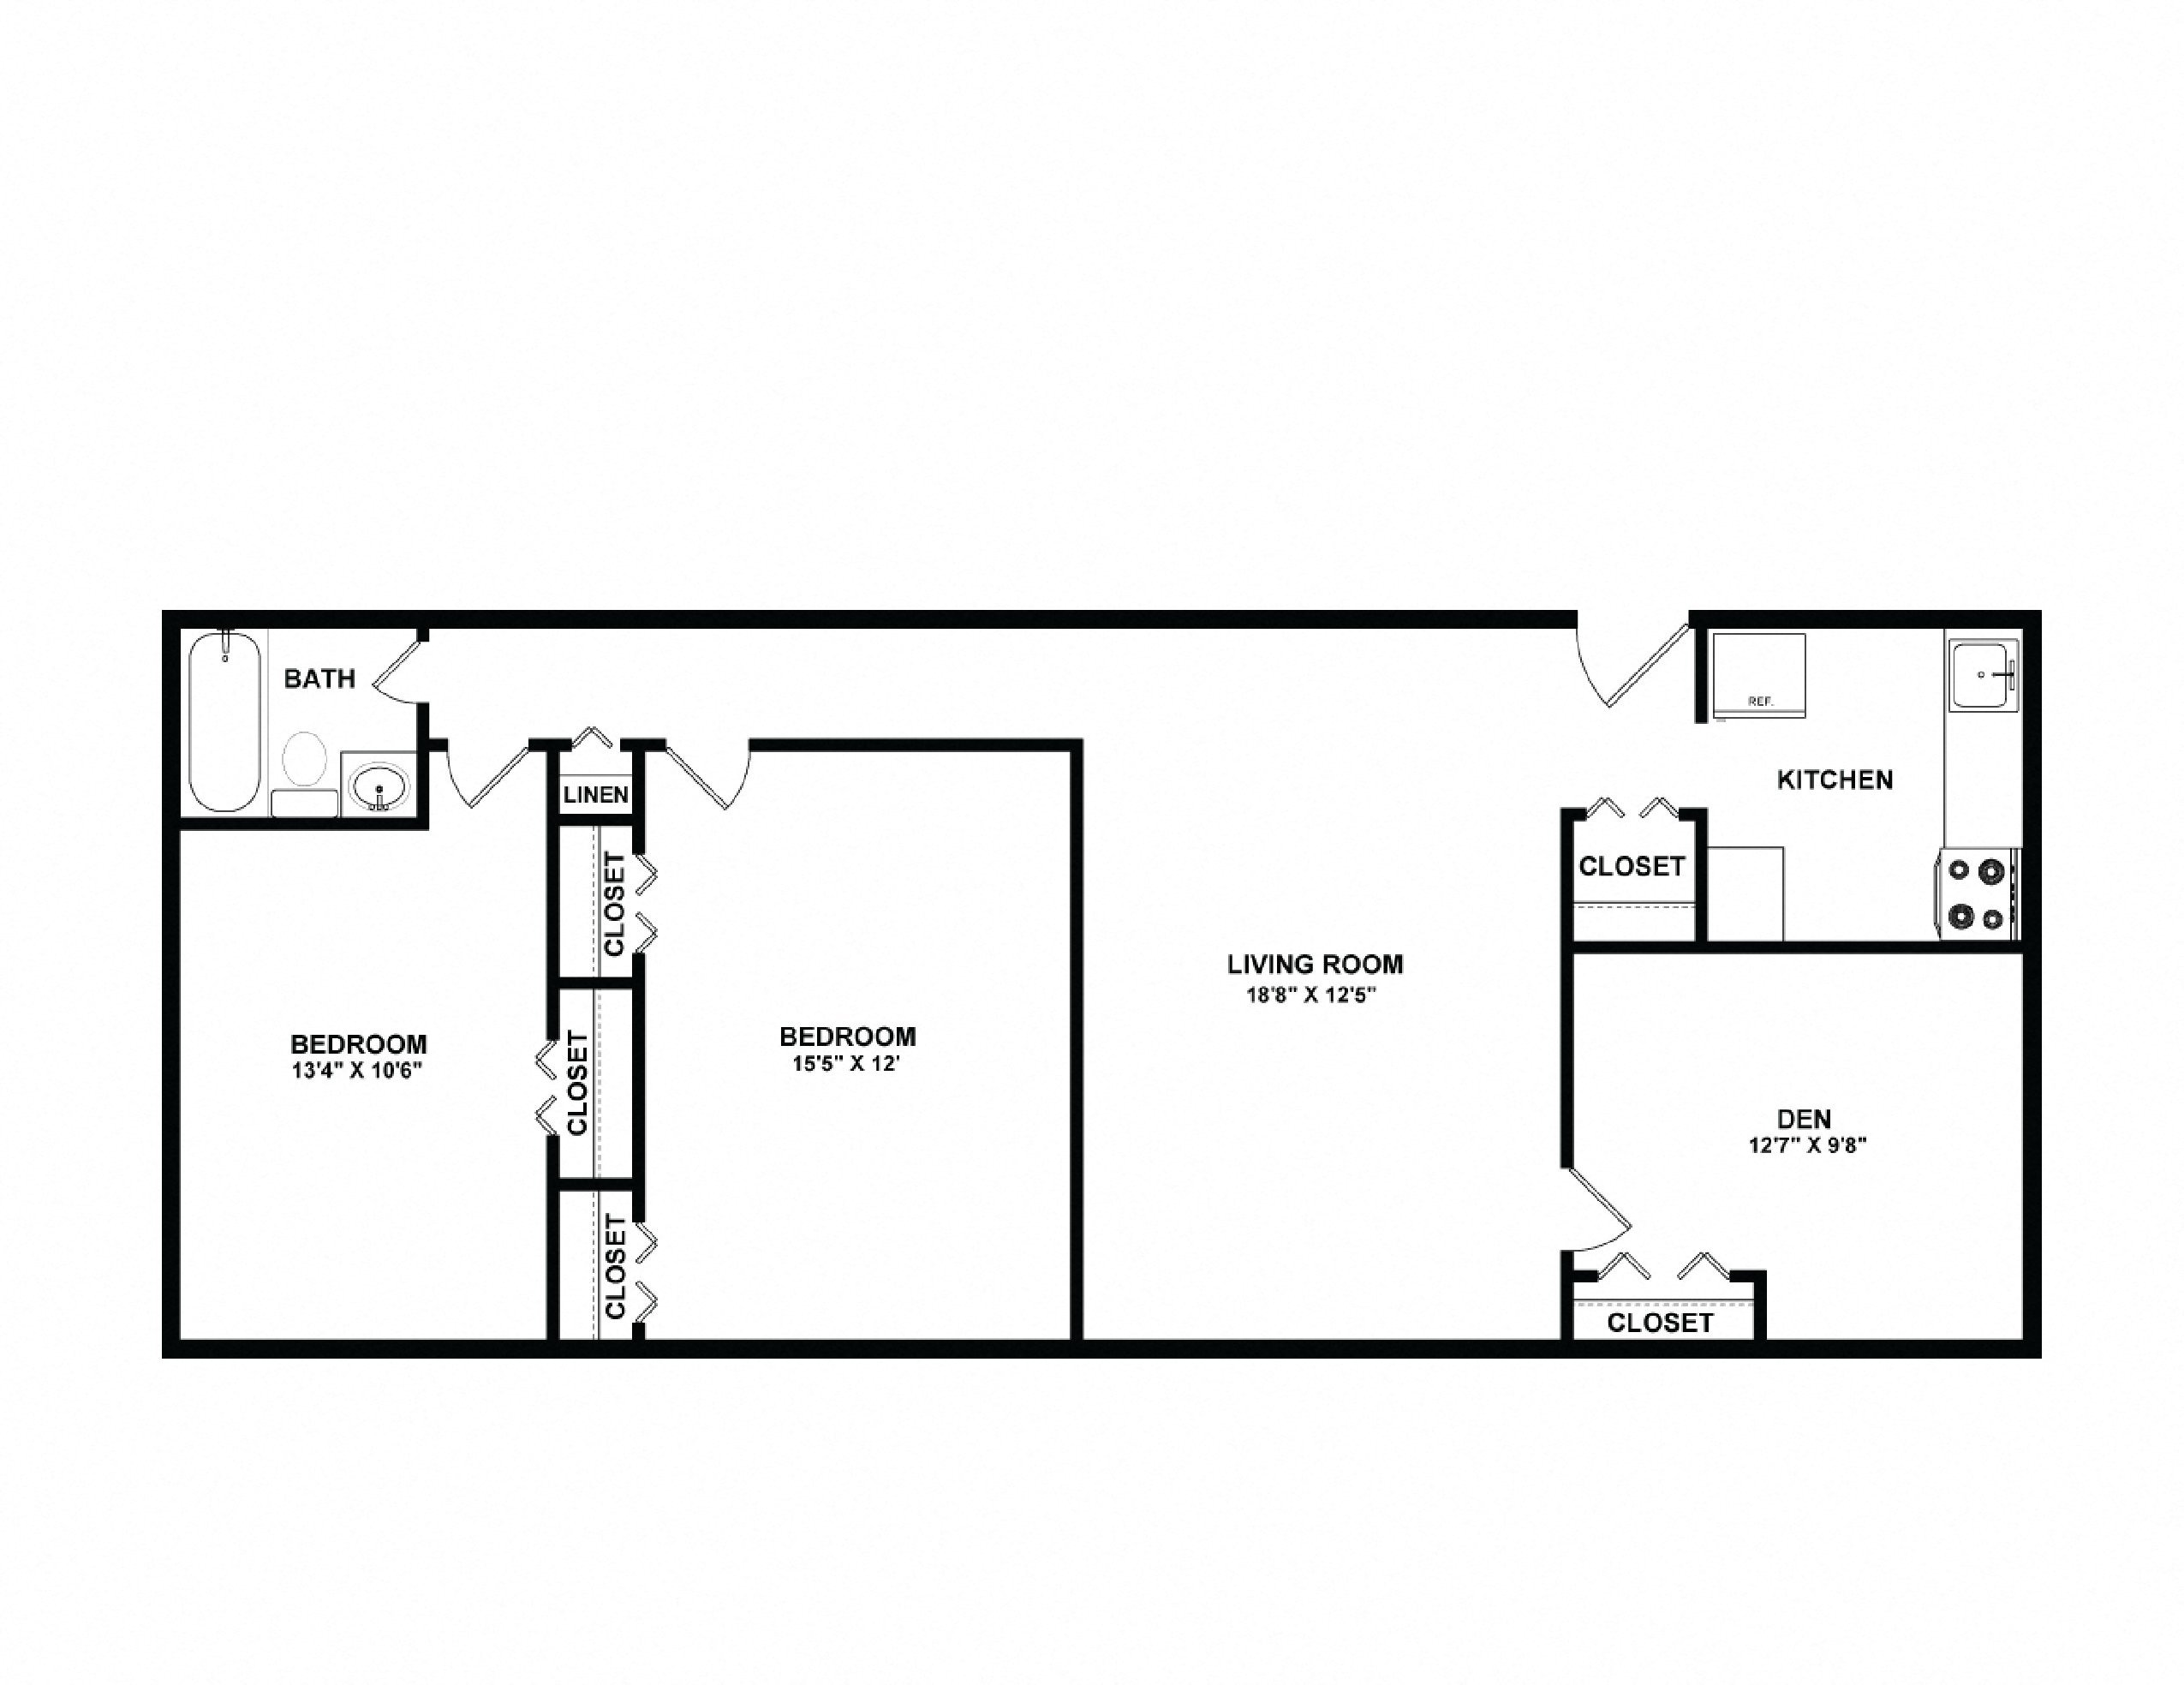 Floor Plans & Layouts | Summit Hills | Southern Management